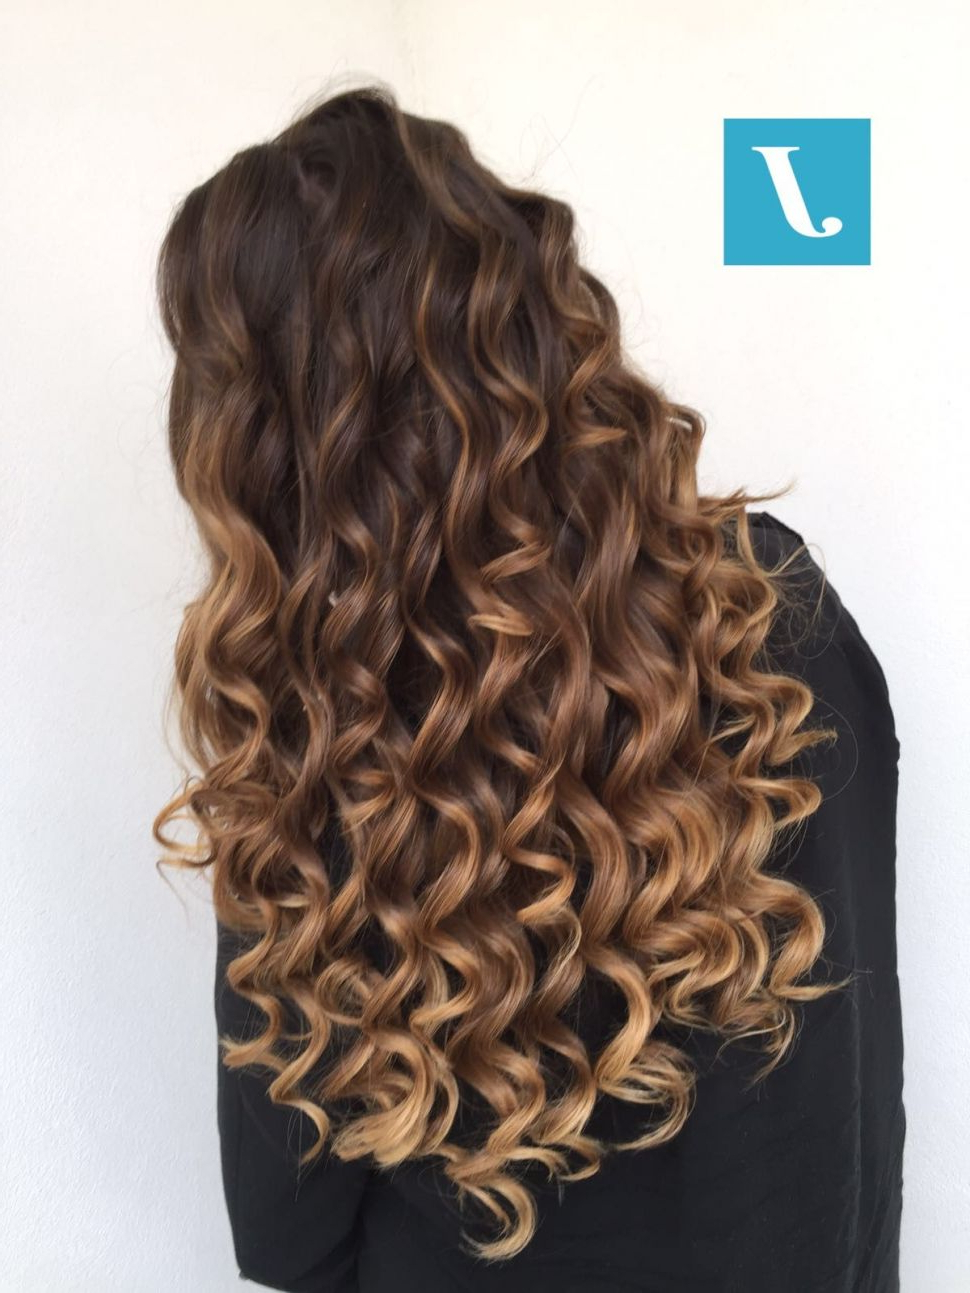 Hairstyles : Pinbrianaaf09F8Cb9 On Haire280A2Wee280A2Go In 2018 Pertaining To Well Known Ravishing Raven Waves Hairstyles (Gallery 10 of 20)